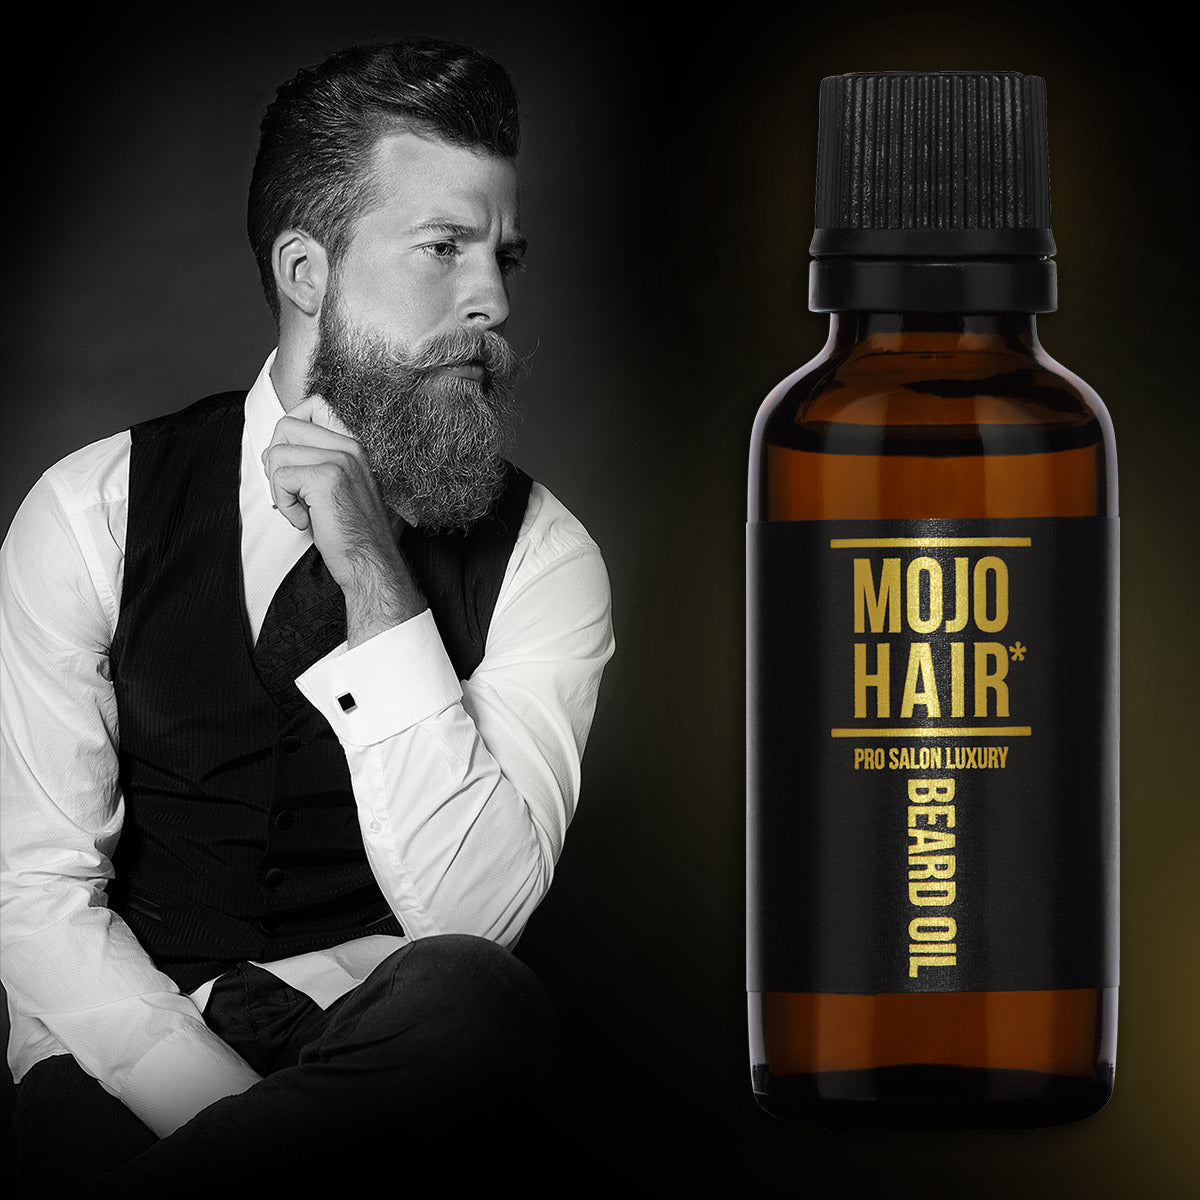 MOJO Hair Pro-Salon Luxury Beard Oil featured on Tajmeeli.com